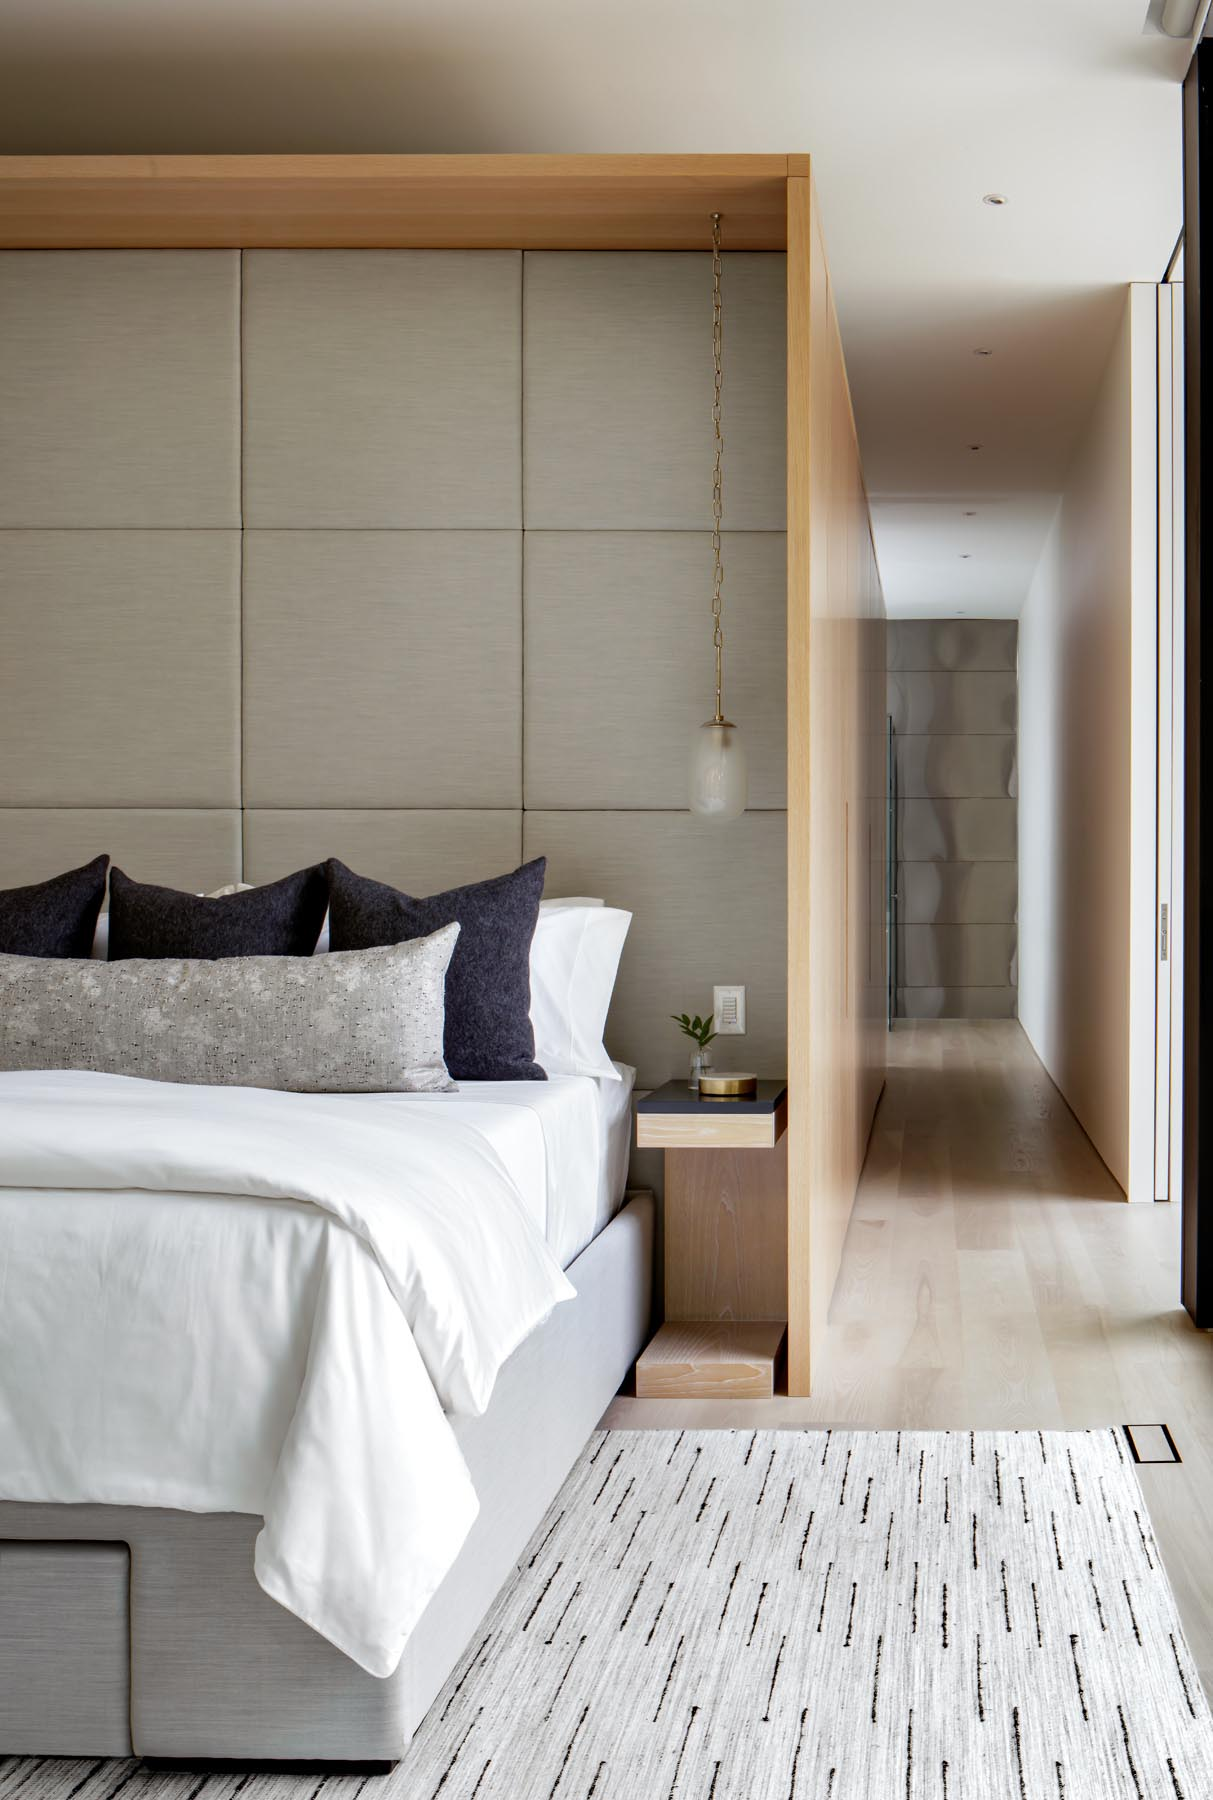 This modern primary bedroom has floor-to-ceiling windows, and a sliding glass opens to a private outdoor space.